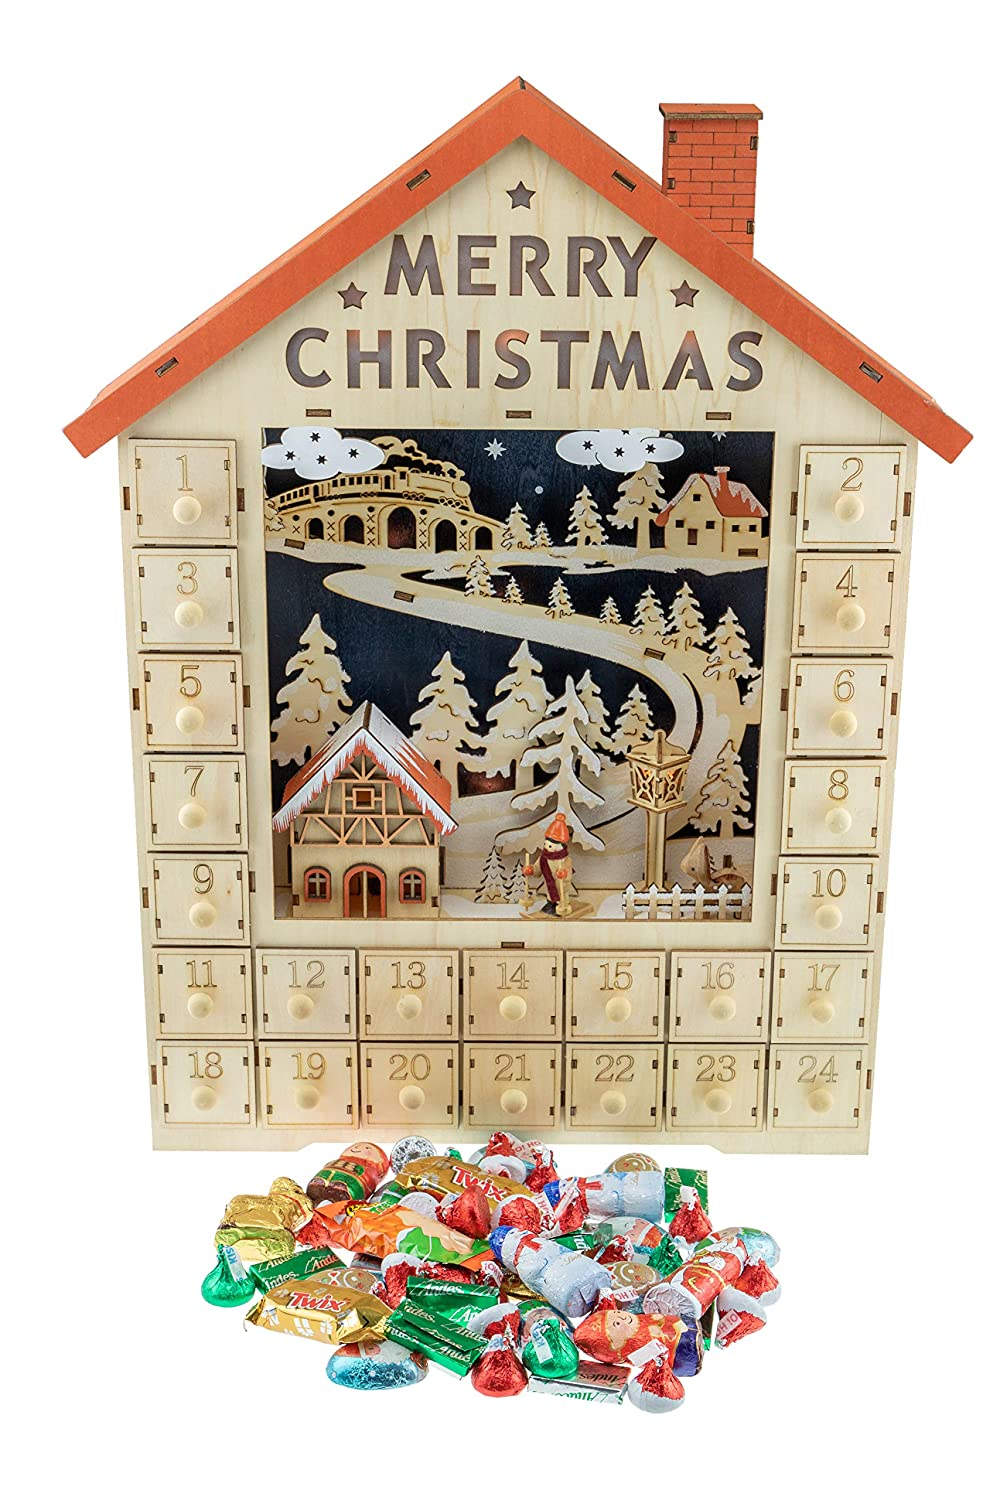 779fe51cf24 Clever Creations Traditional Wooden Christmas Advent Calendar   Festive  Christmas Village Decorations   Battery Operated LED Lights   Winter Snow  and ...